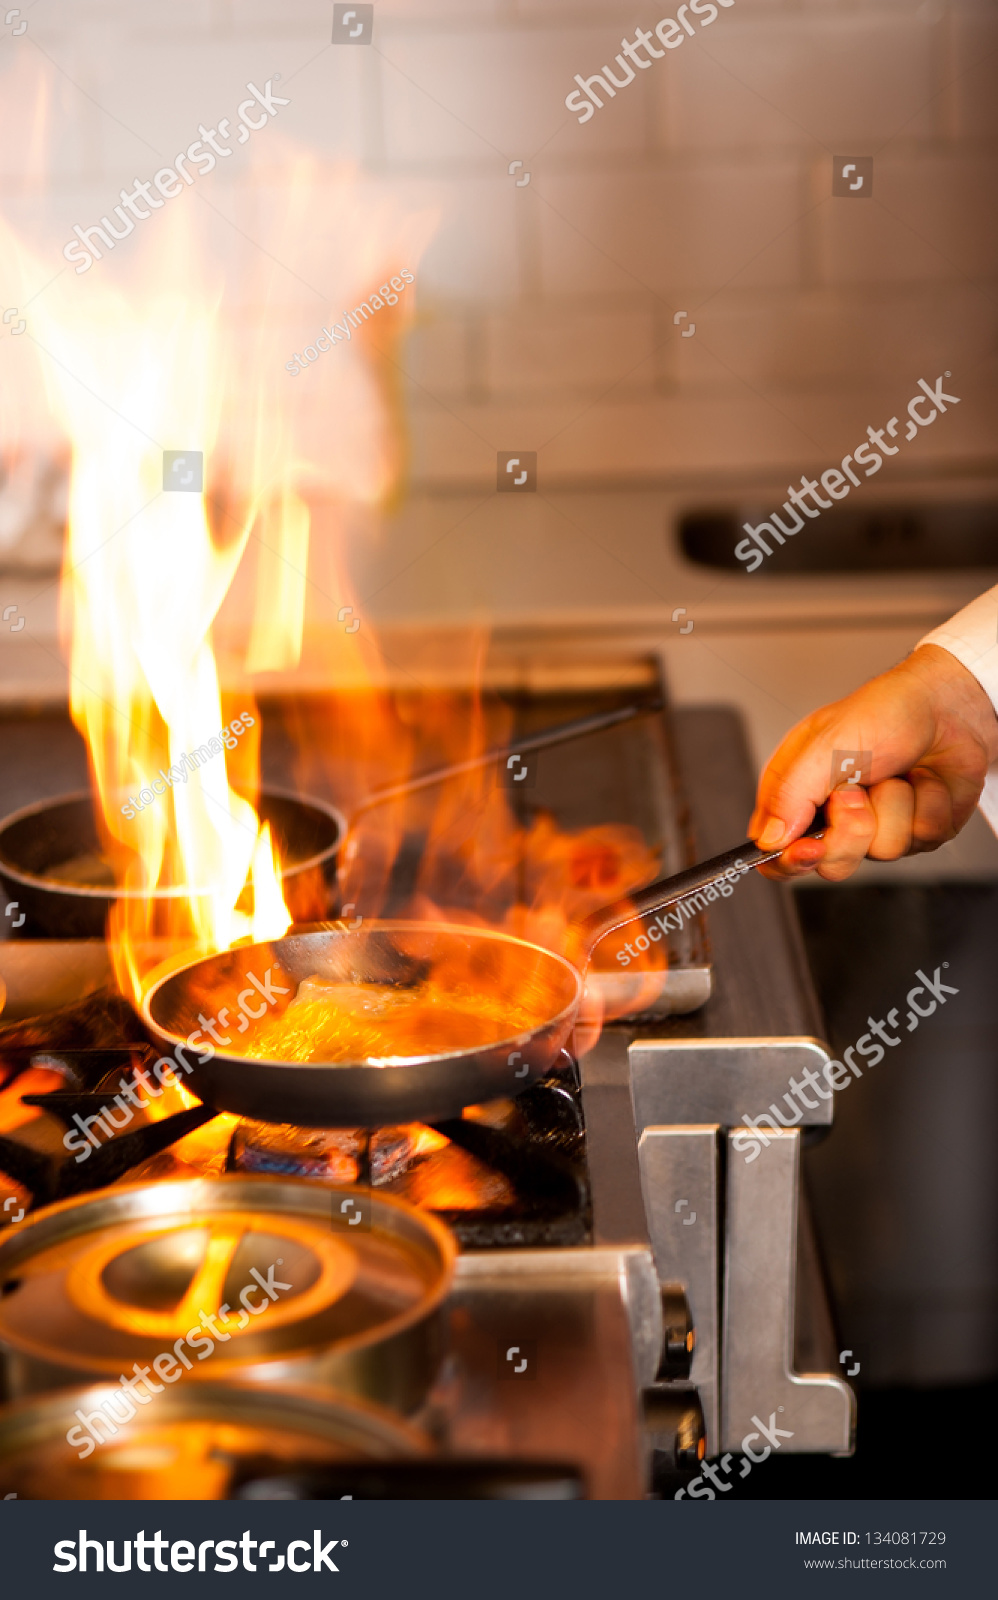 Chef Cooking Flame Frying Pan On Stock Photo 134081729